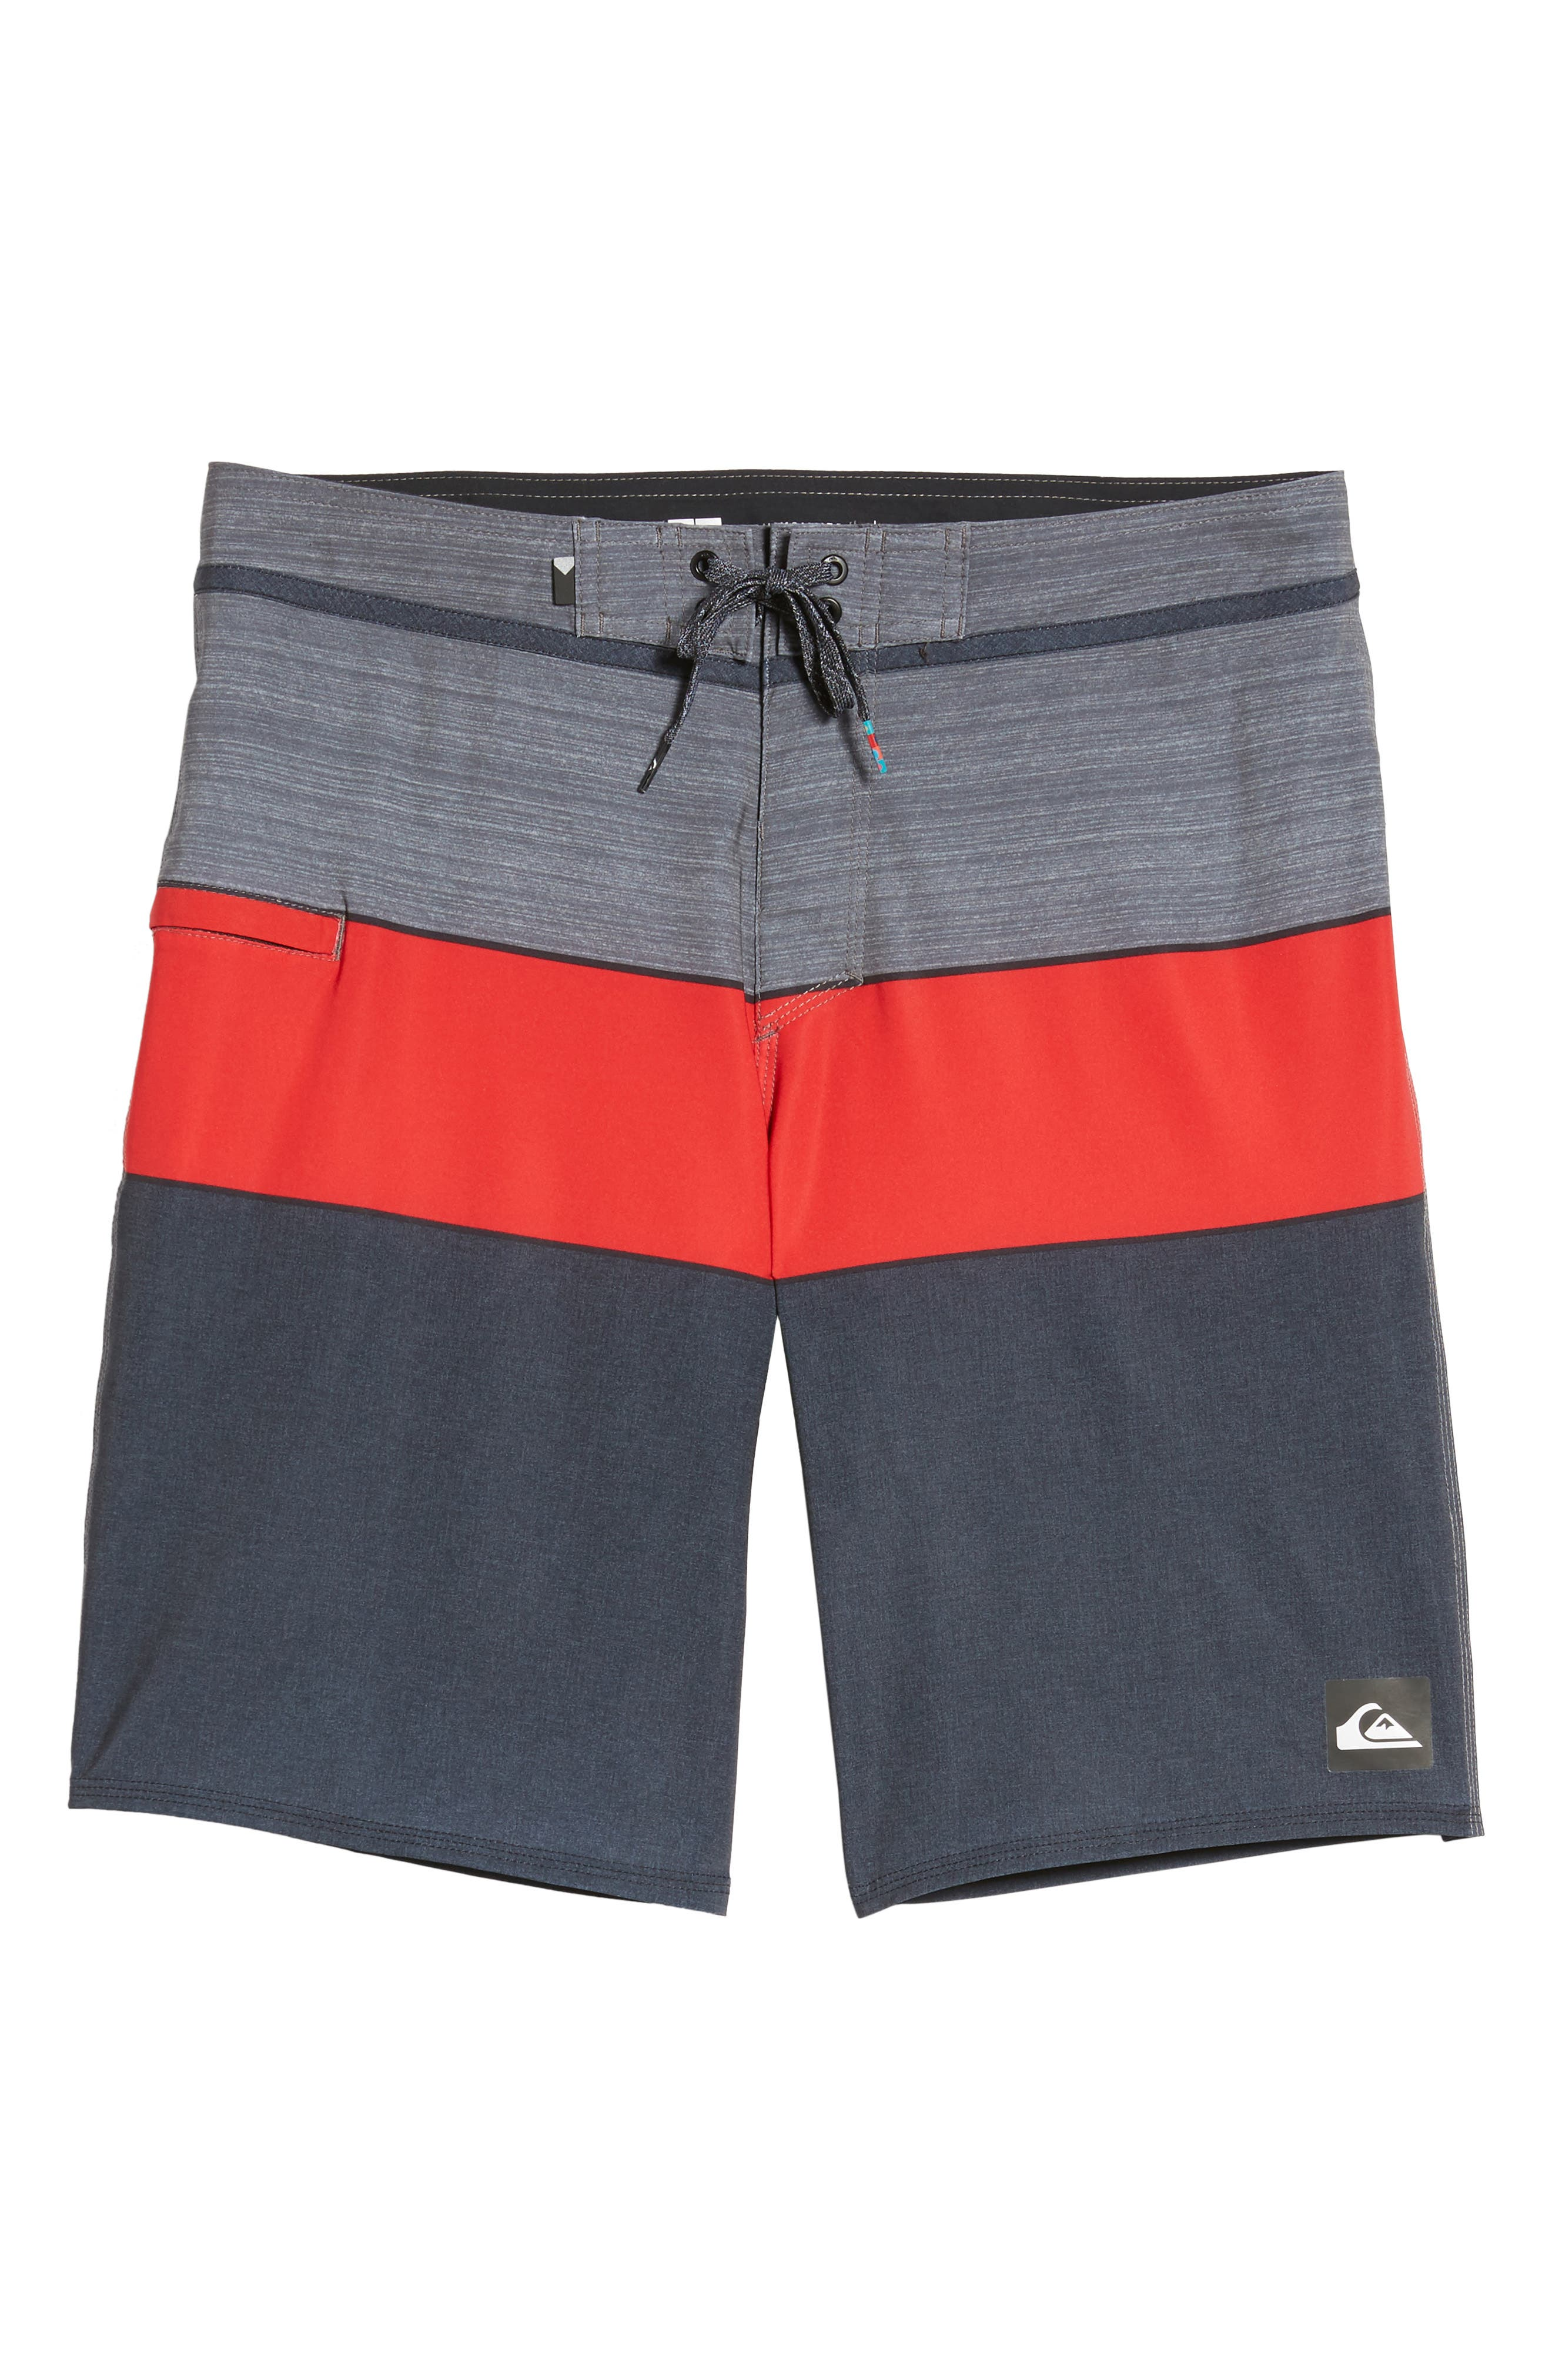 Everyday Blocked Board Shorts,                             Alternate thumbnail 6, color,                             002